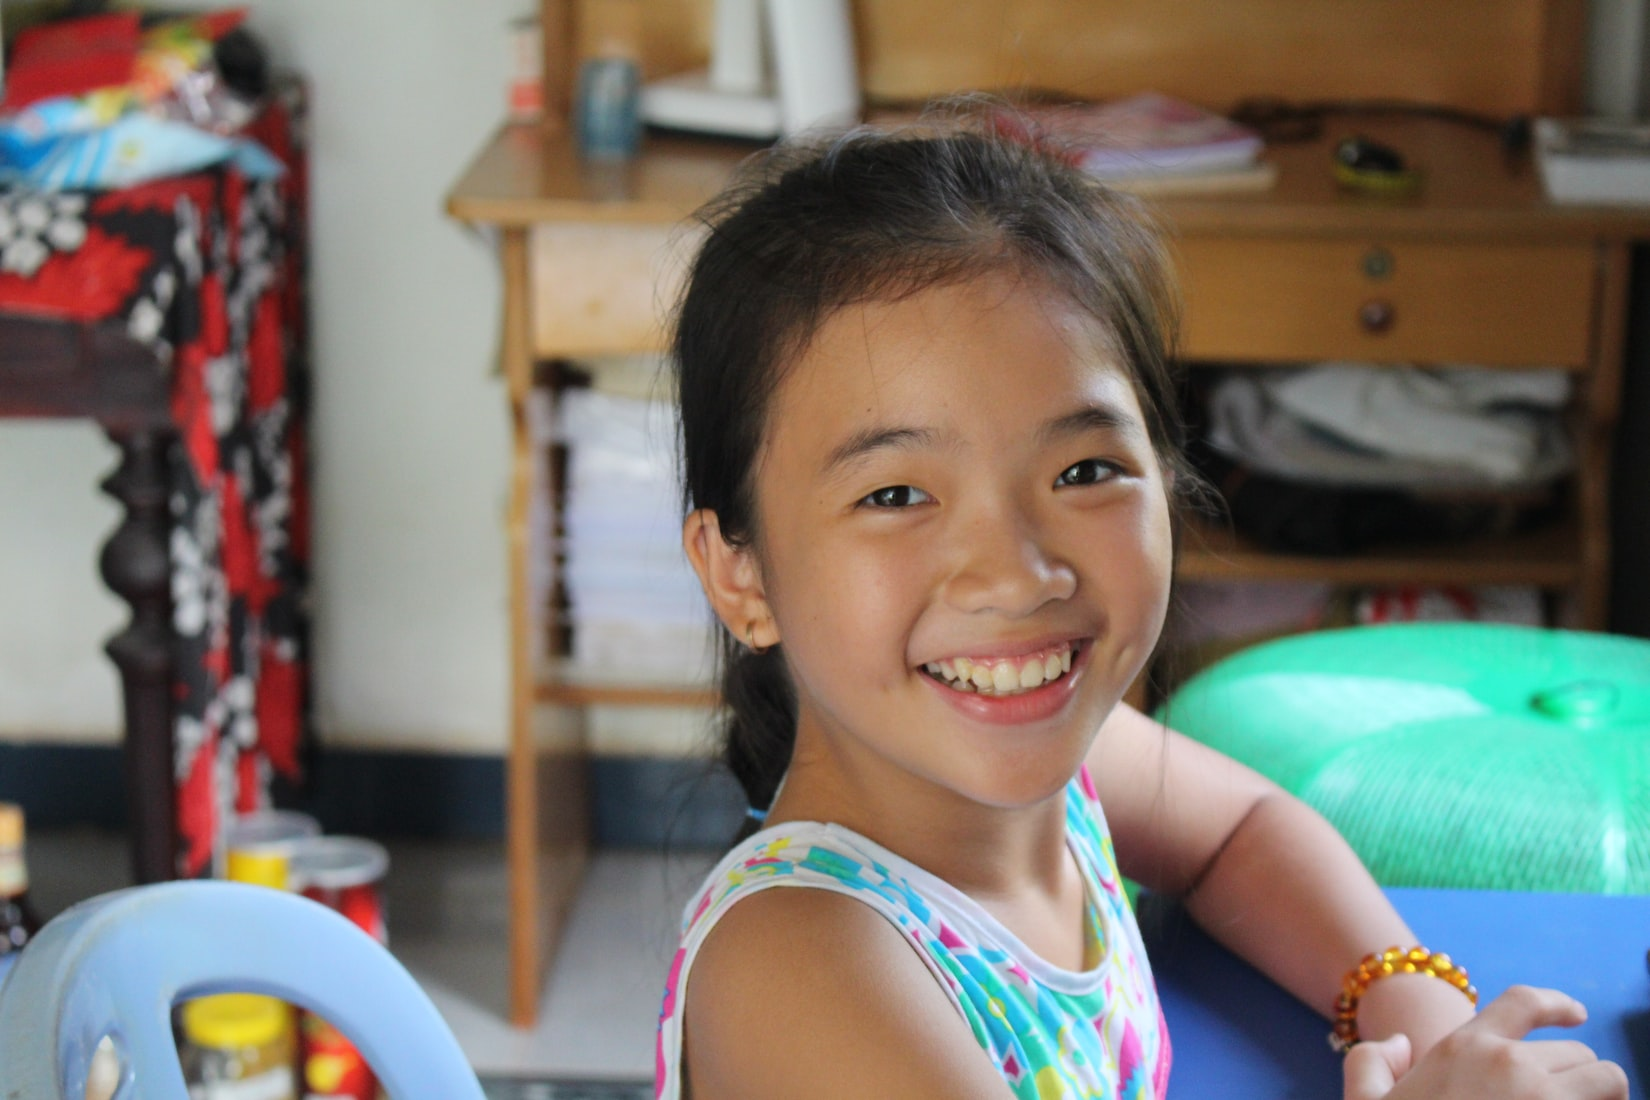 A young girl smiles toward the camera - she is in a multicolored tank top and seated comfortably in a common area